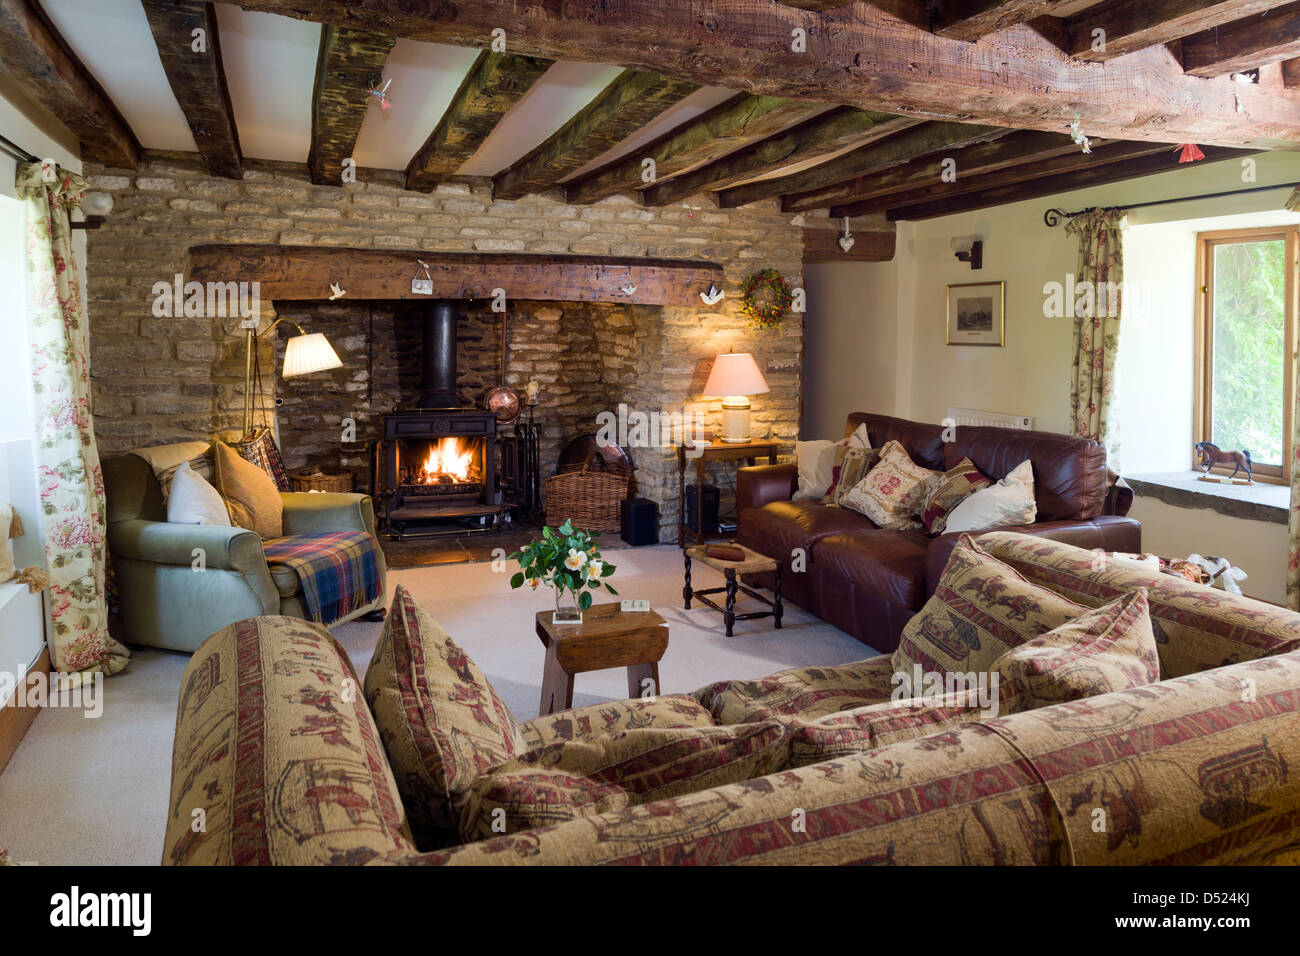 cosy living room with log burner pottery barn chairs a cottage burning stove exposed stone walls and ceiling beams features